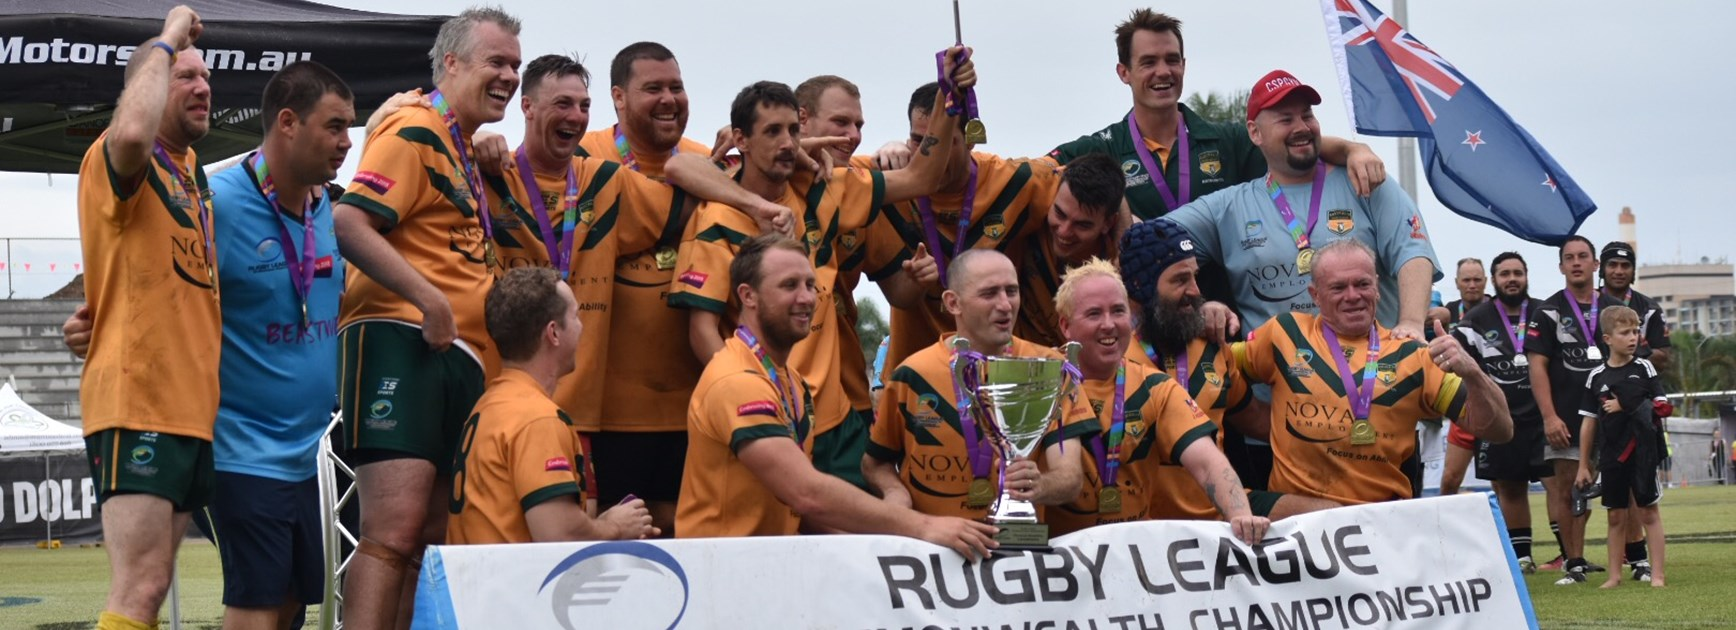 First ever Physical Disability Rugby League World Cup to take place in 2021